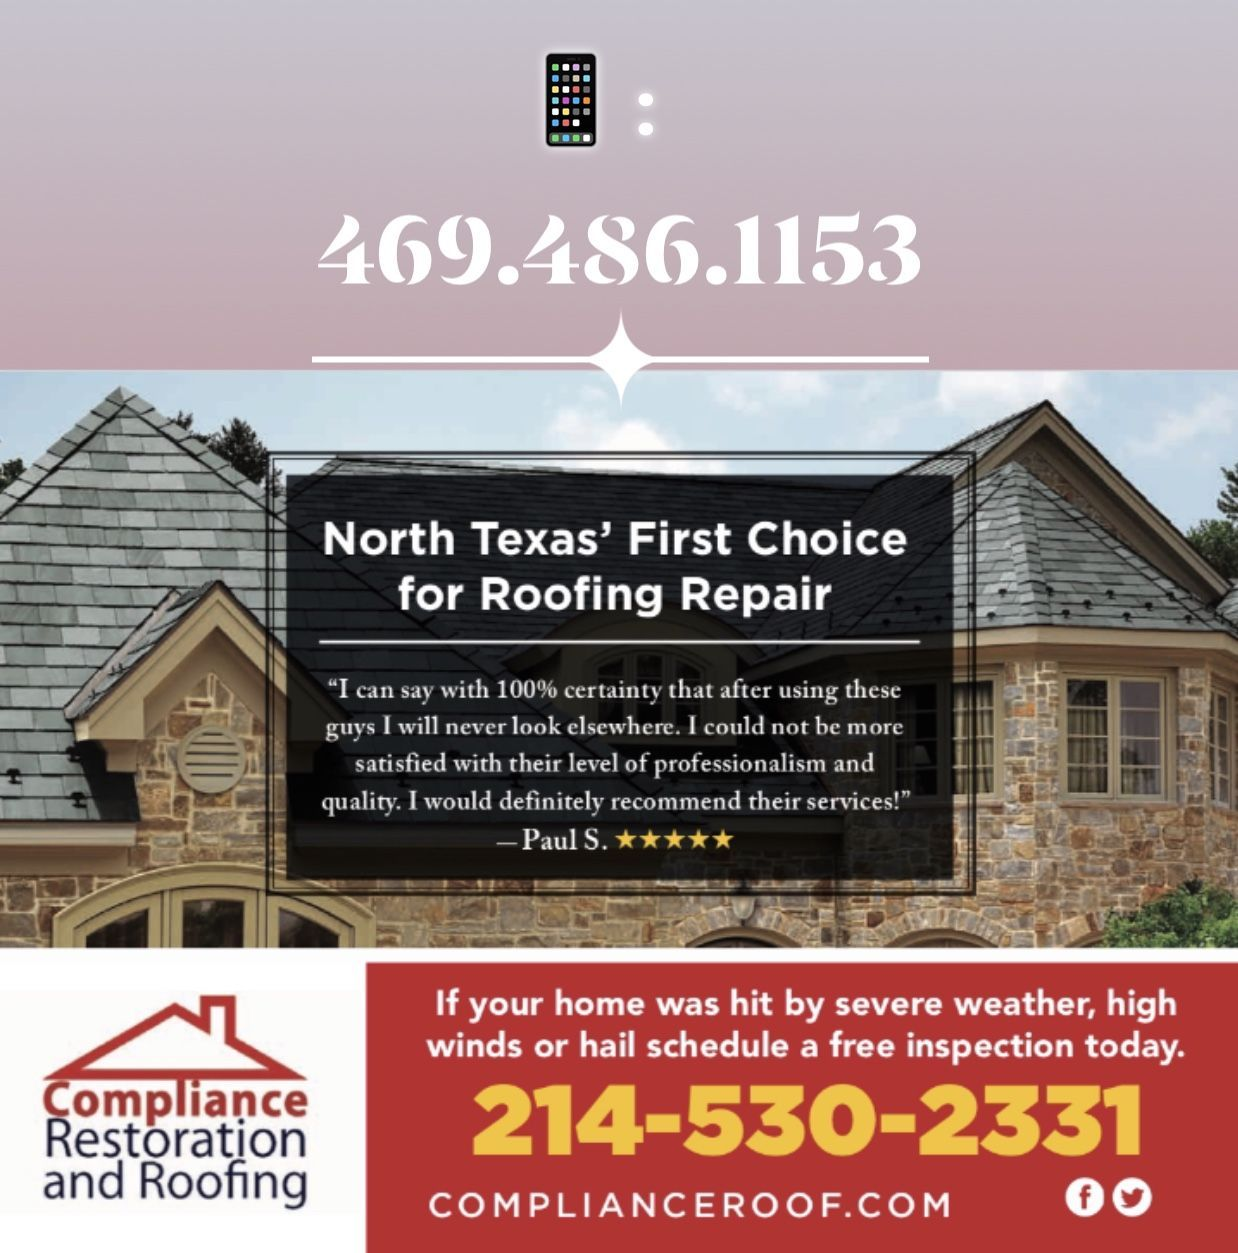 My Contact Information Free Inspections Dallas Ftworth Rockwall Plano Frisco Mck Contact Information In 2020 Business Insurance Roof Repair Roofing